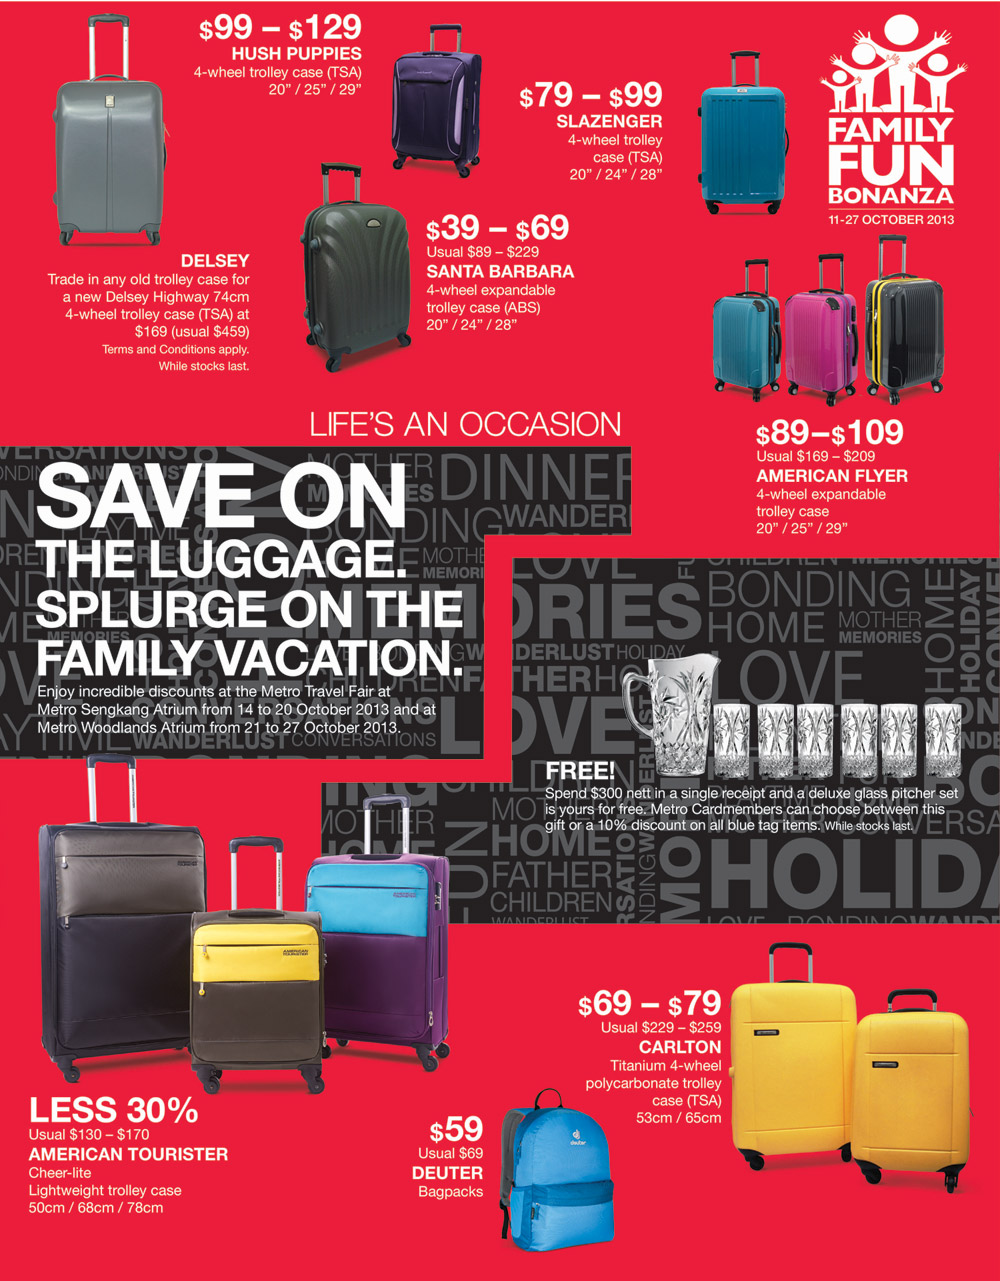 Metro Family Fun Bonanza October 2013 – Travel Luggages, Cosmetics, Baby Products & Ladies Handbags On Sale